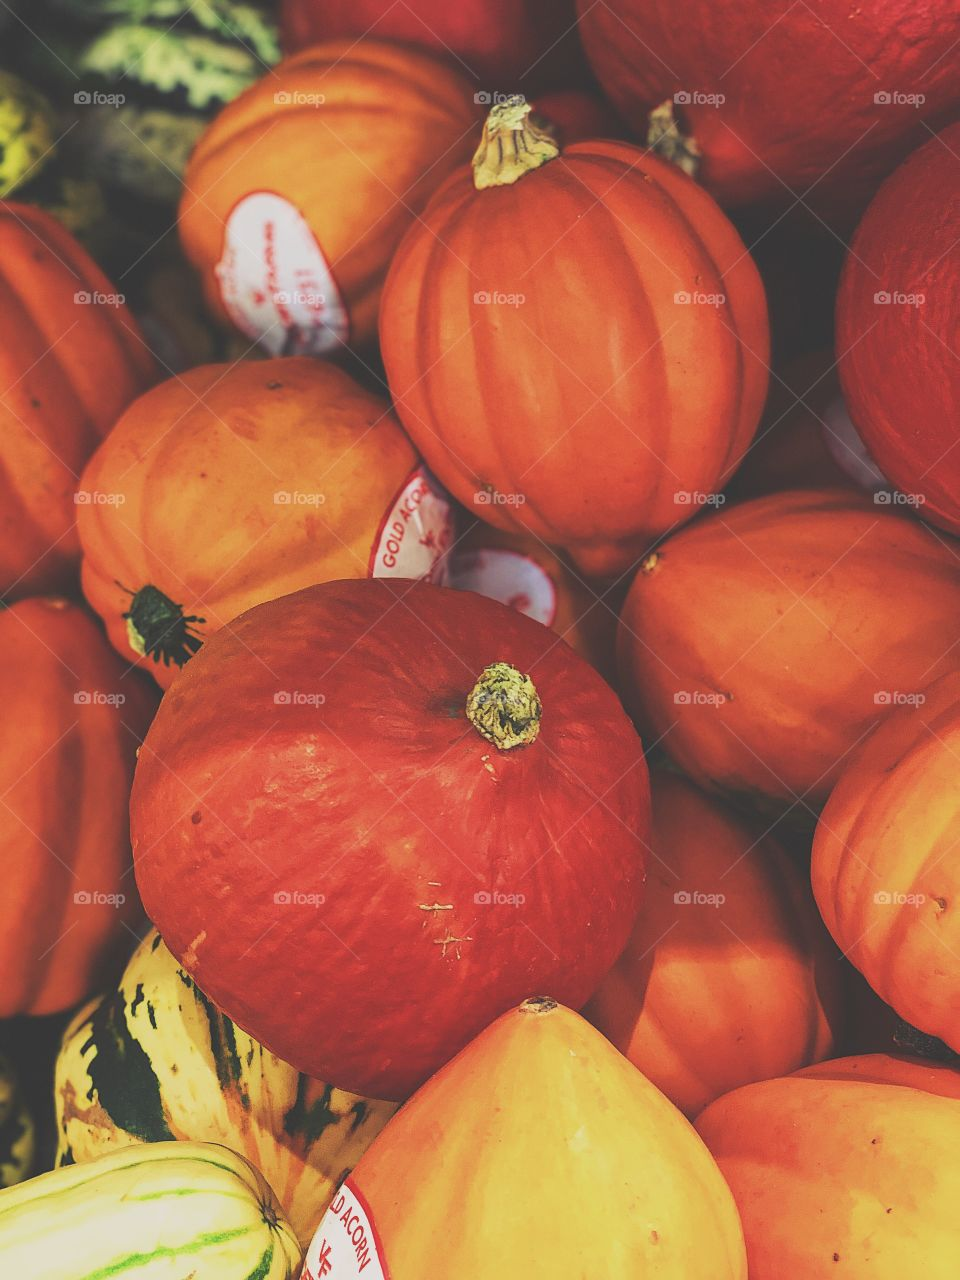 Pumpkins And Gourds In The Pumpkin Patch, First Signs Of Autumn, Pumpkins Ready For Halloween, Pumpkin Decorating, Colorful Pumpkins And Gourds